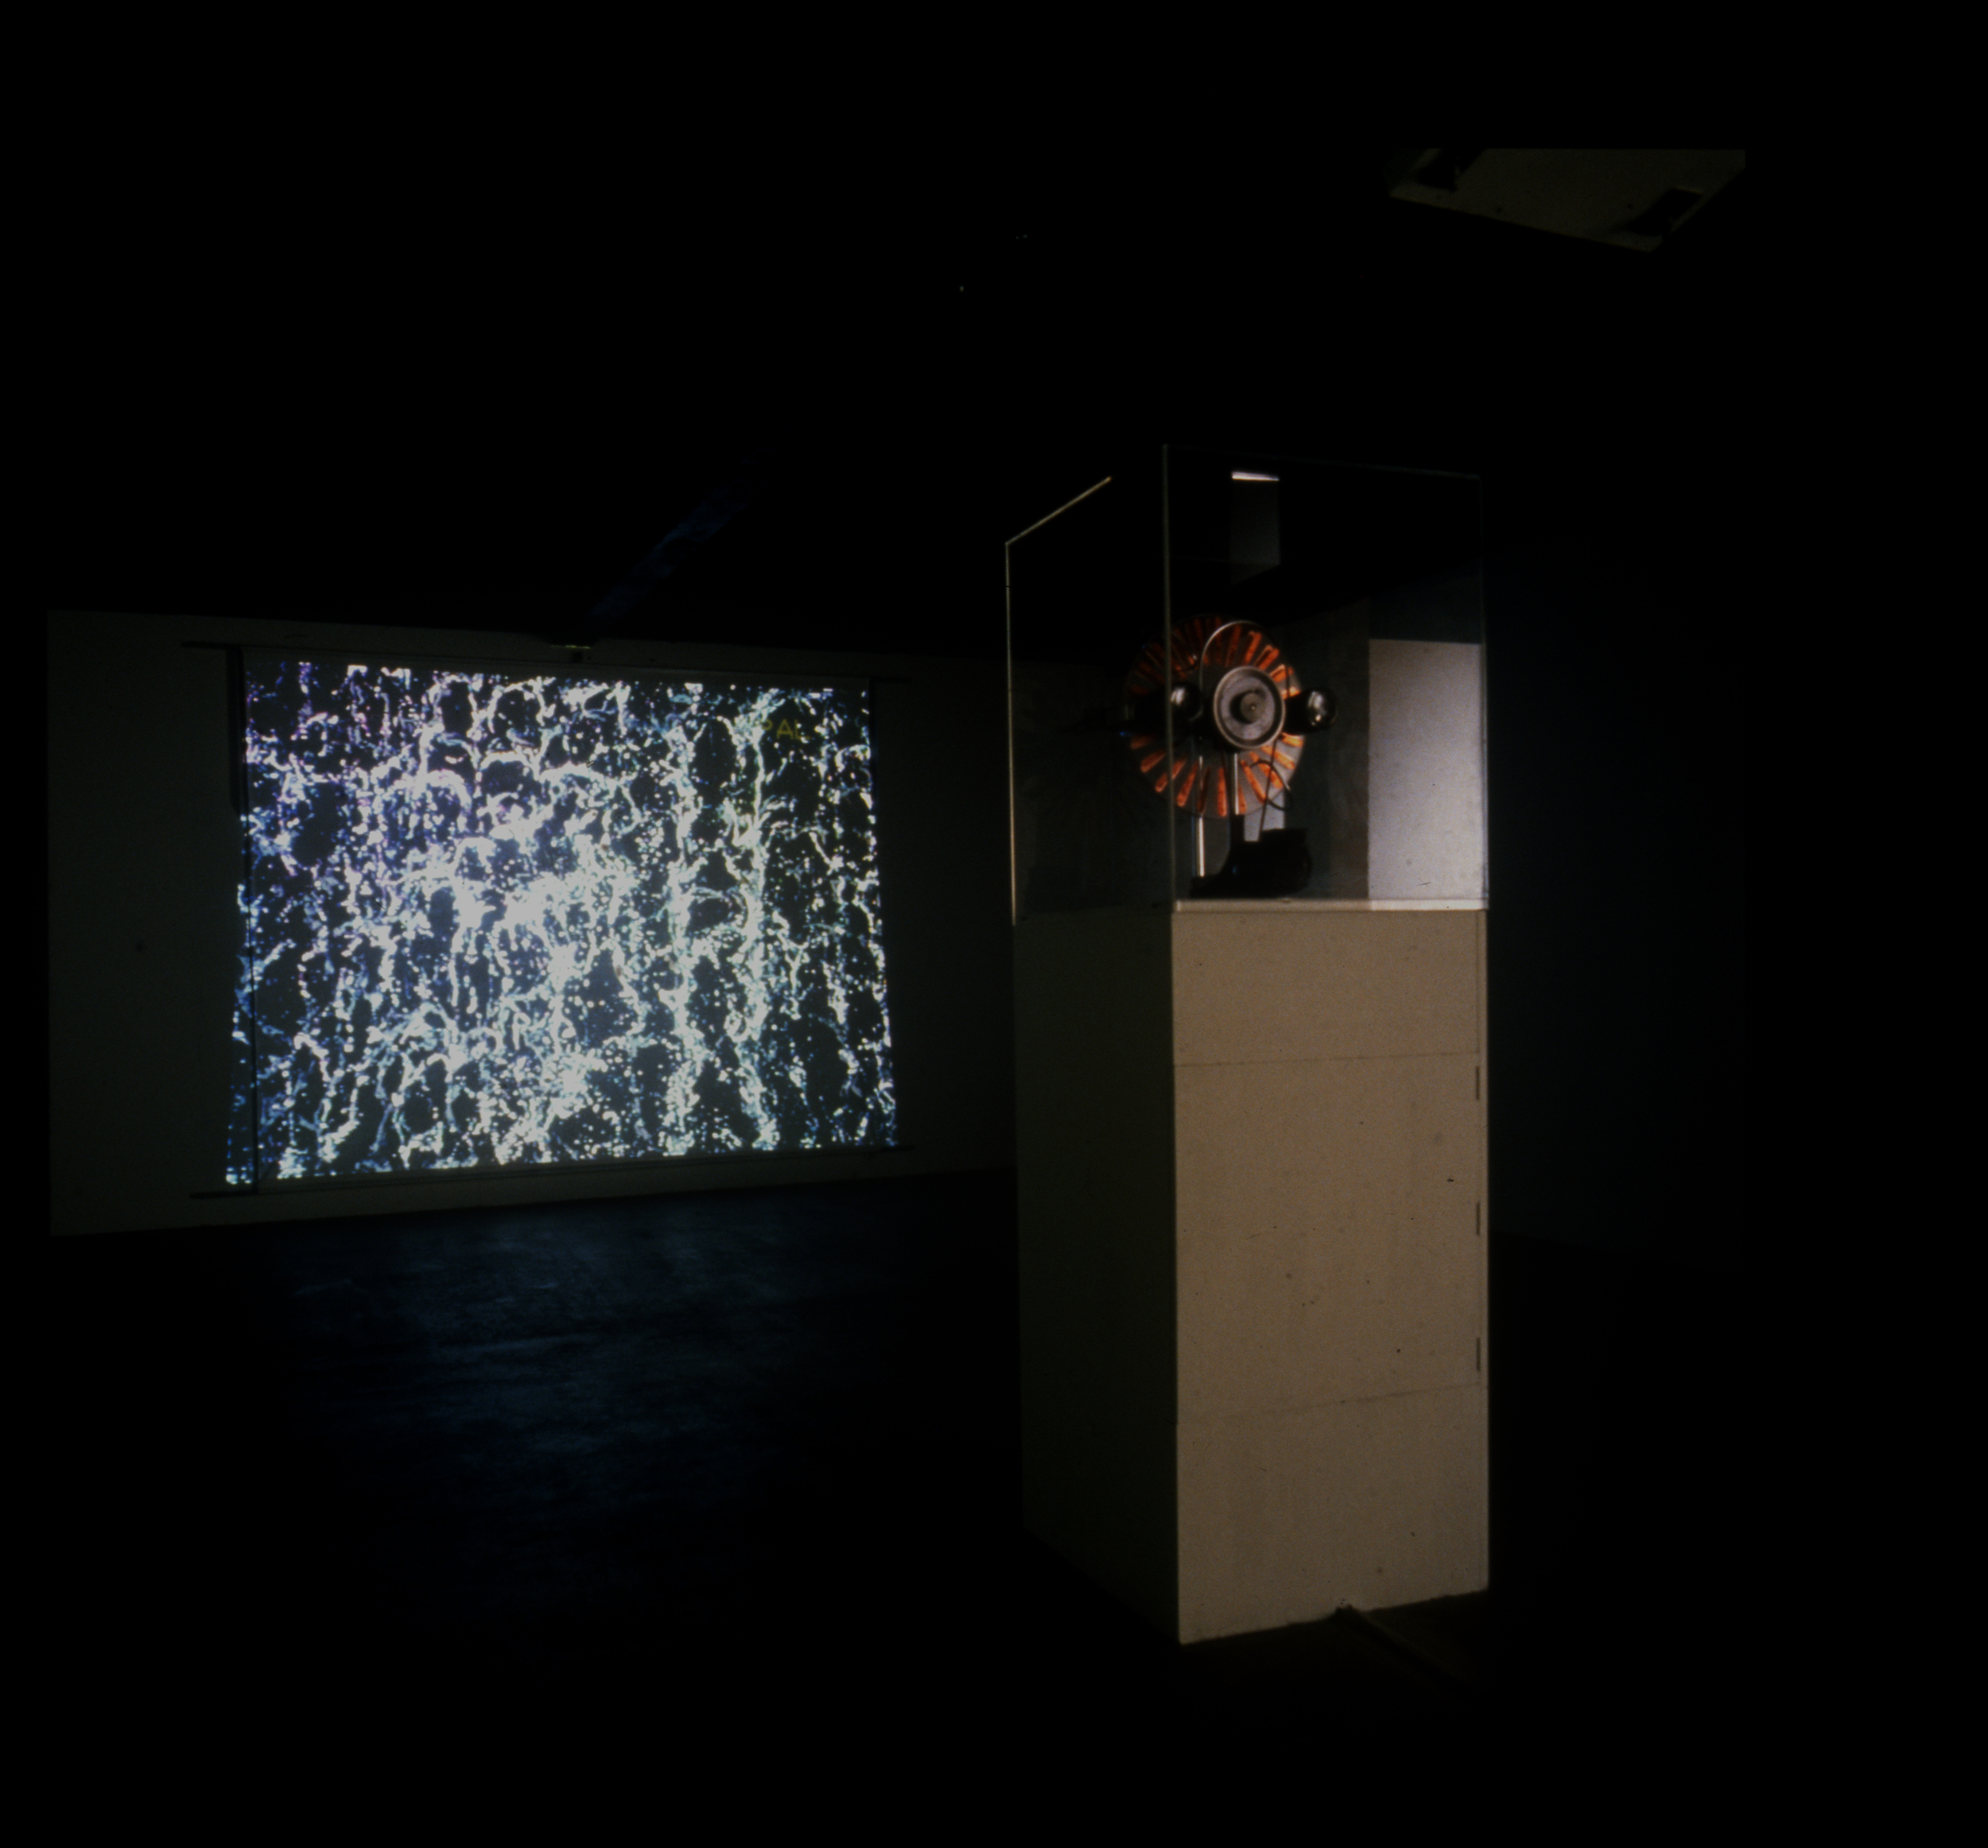 "Reservoir 1991, installation, projection, Wimshurst machine, cctv camera, three 3"" TVs, strobe, water dropper. First shown John Hansard then CCB, Lisbon Portugal, Tate Liverpool, Newlyn Art Gallery"